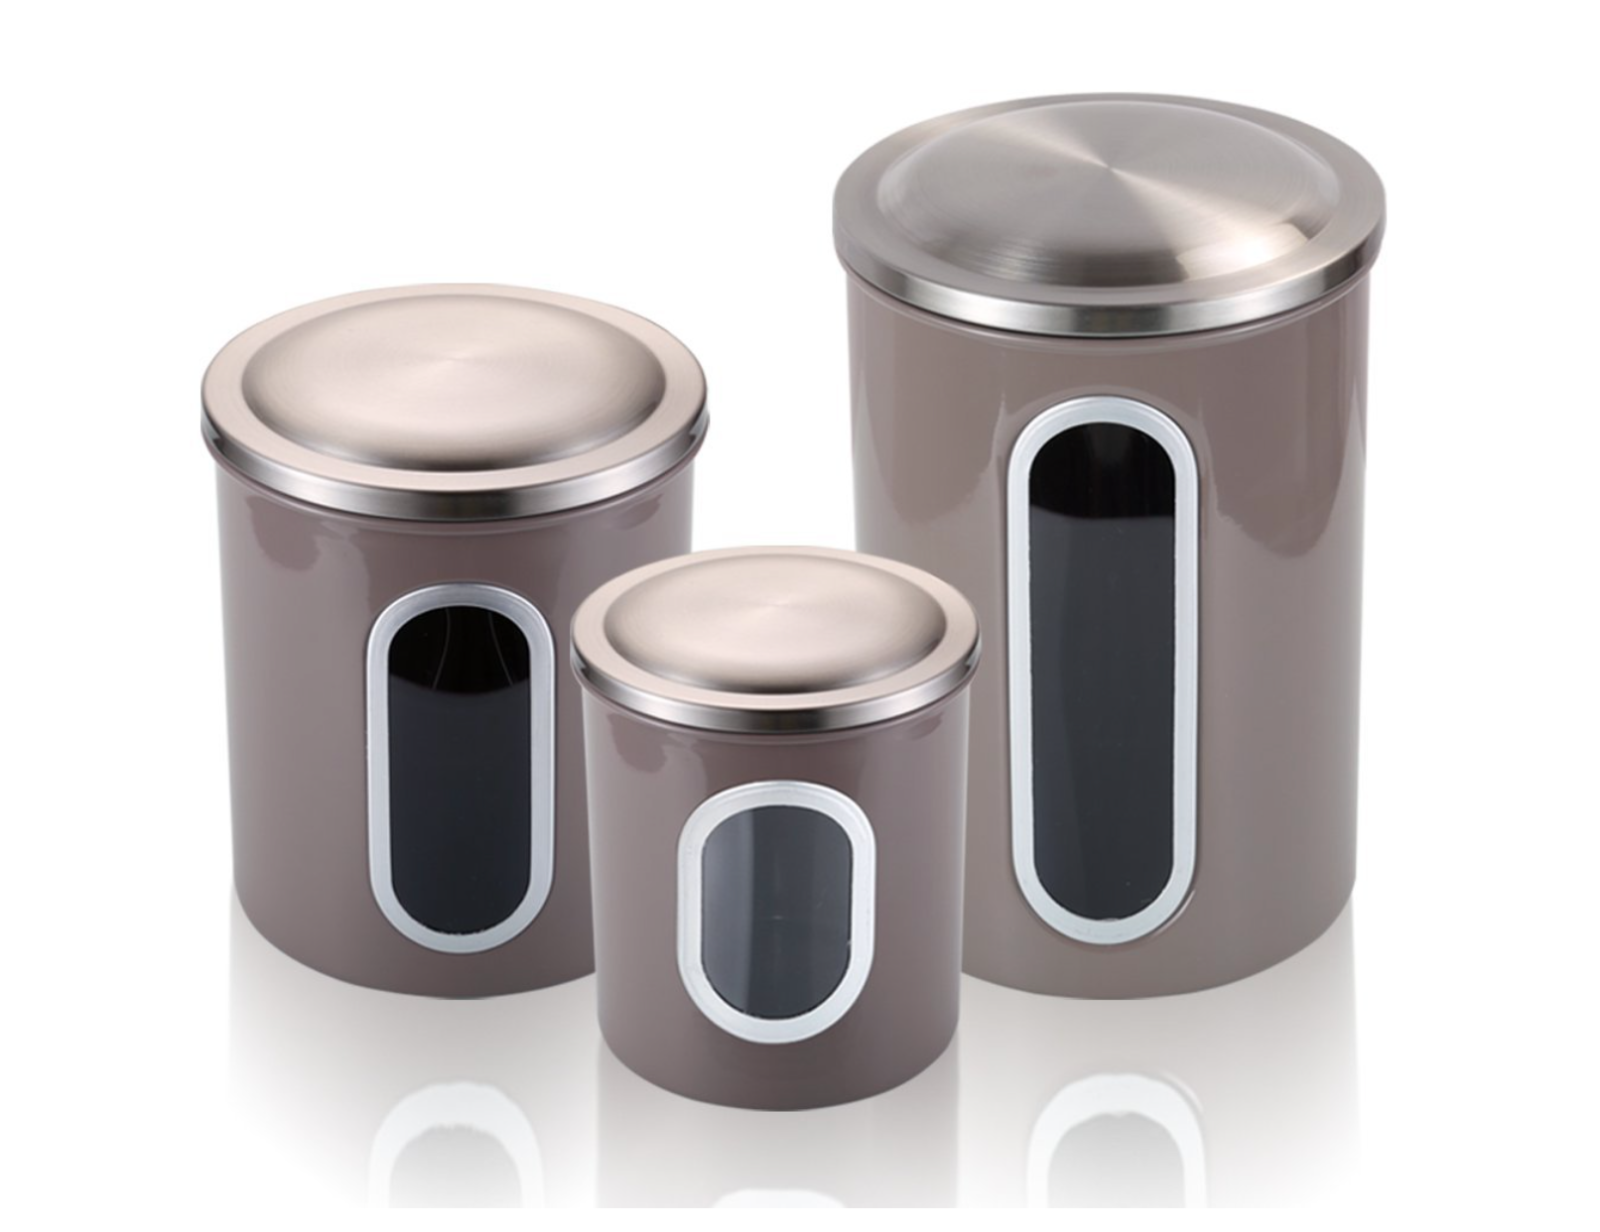 Airtight Tea Coffee Sugar Sets Storage Canisters with with with Window Anti-fingerprint 104c3b